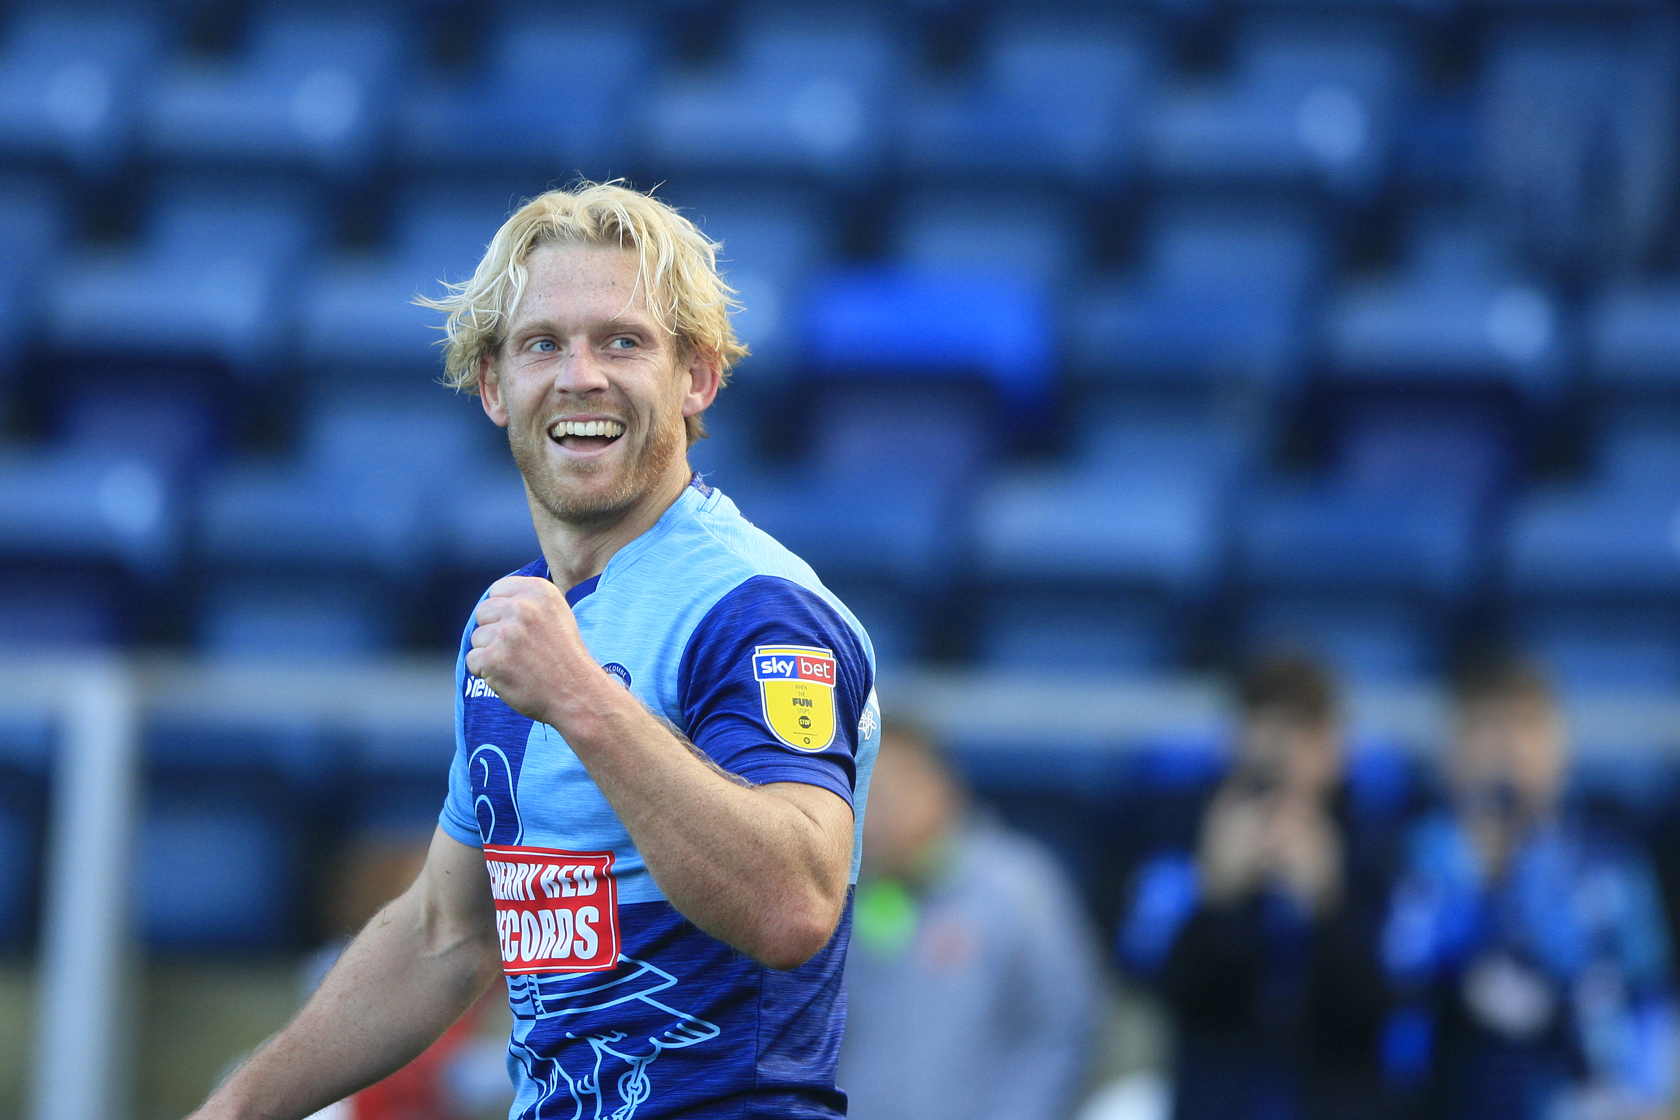 Mackail-Smith has fond memories of his time at Peterborough